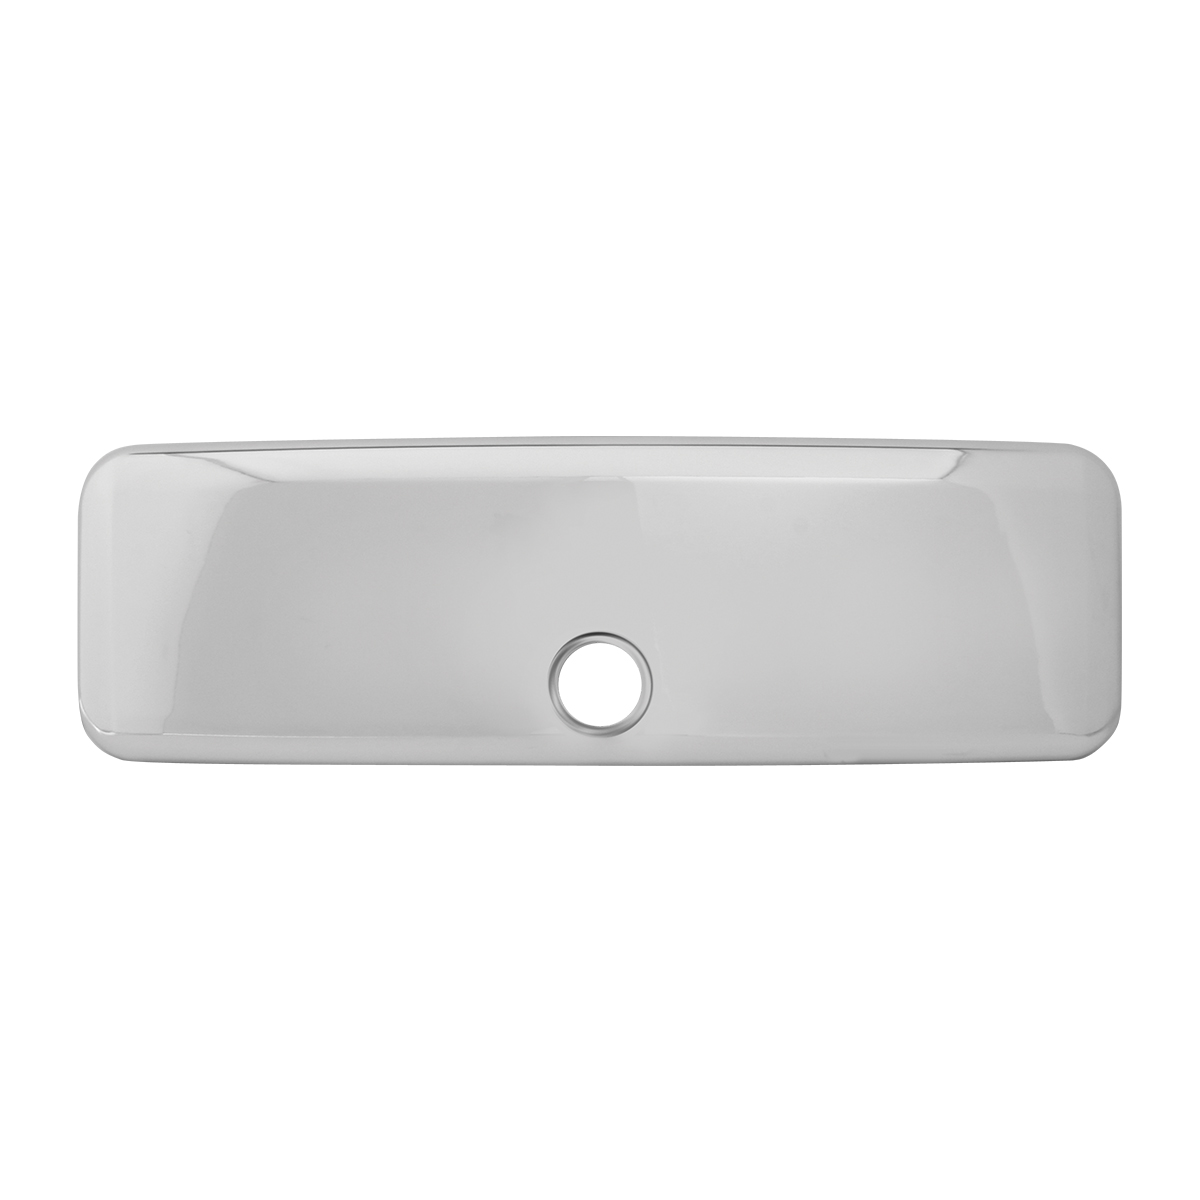 68729 Driver Side Lower Dash Cover for Freightliner